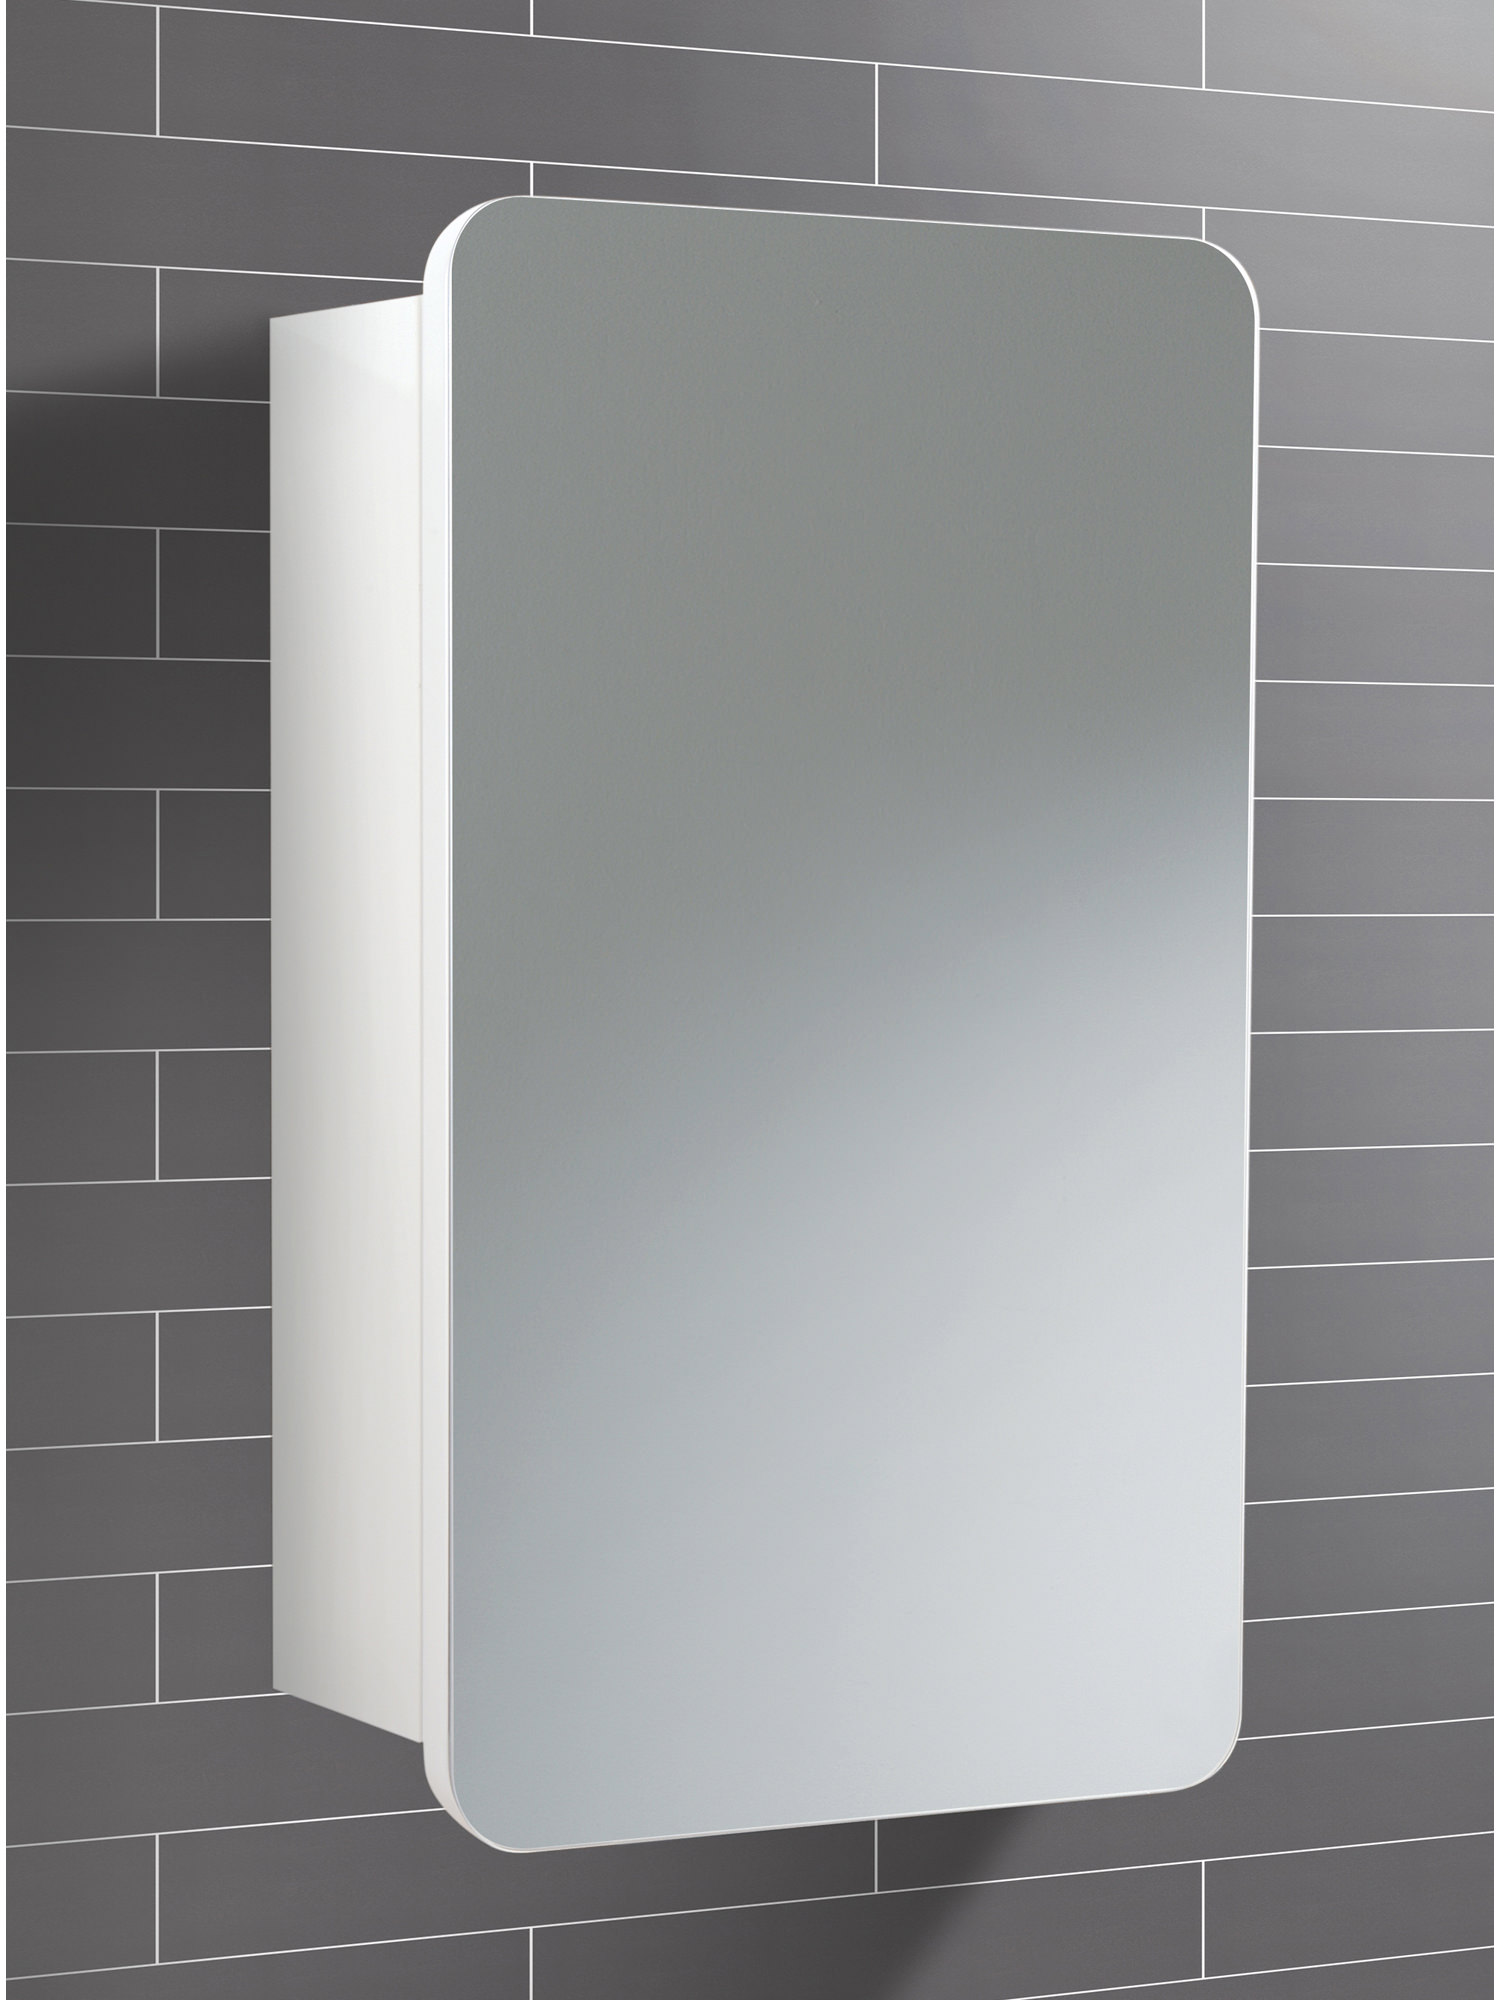 Hib Montana Single Door Bathroom Mirrored Cabinet 350 X